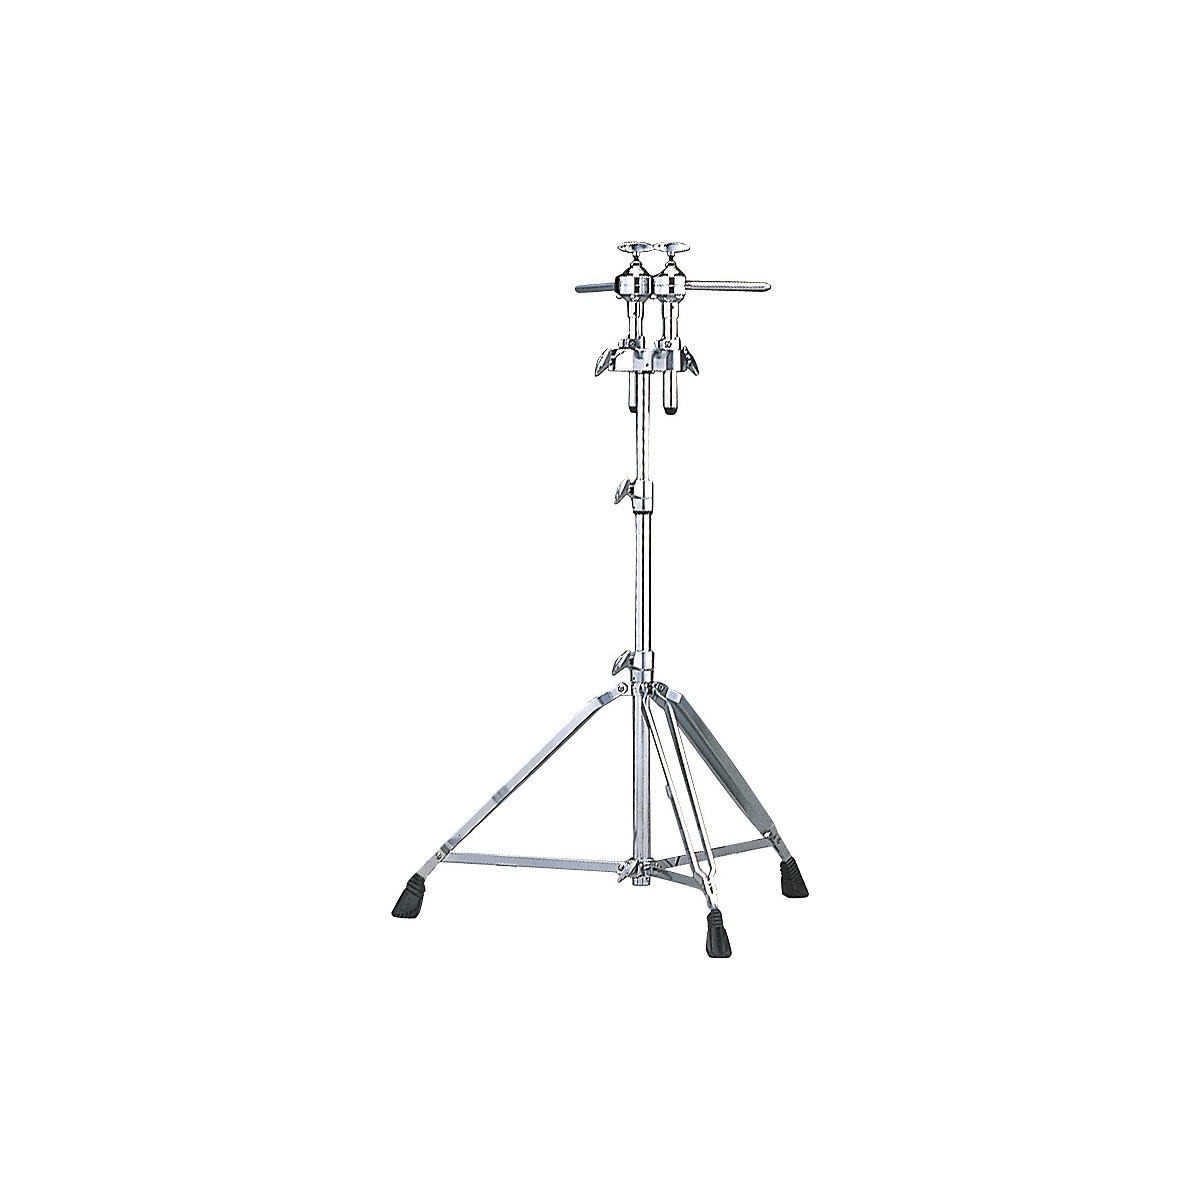 Yamaha 900 Series Tom Stand with Clamps for YESS